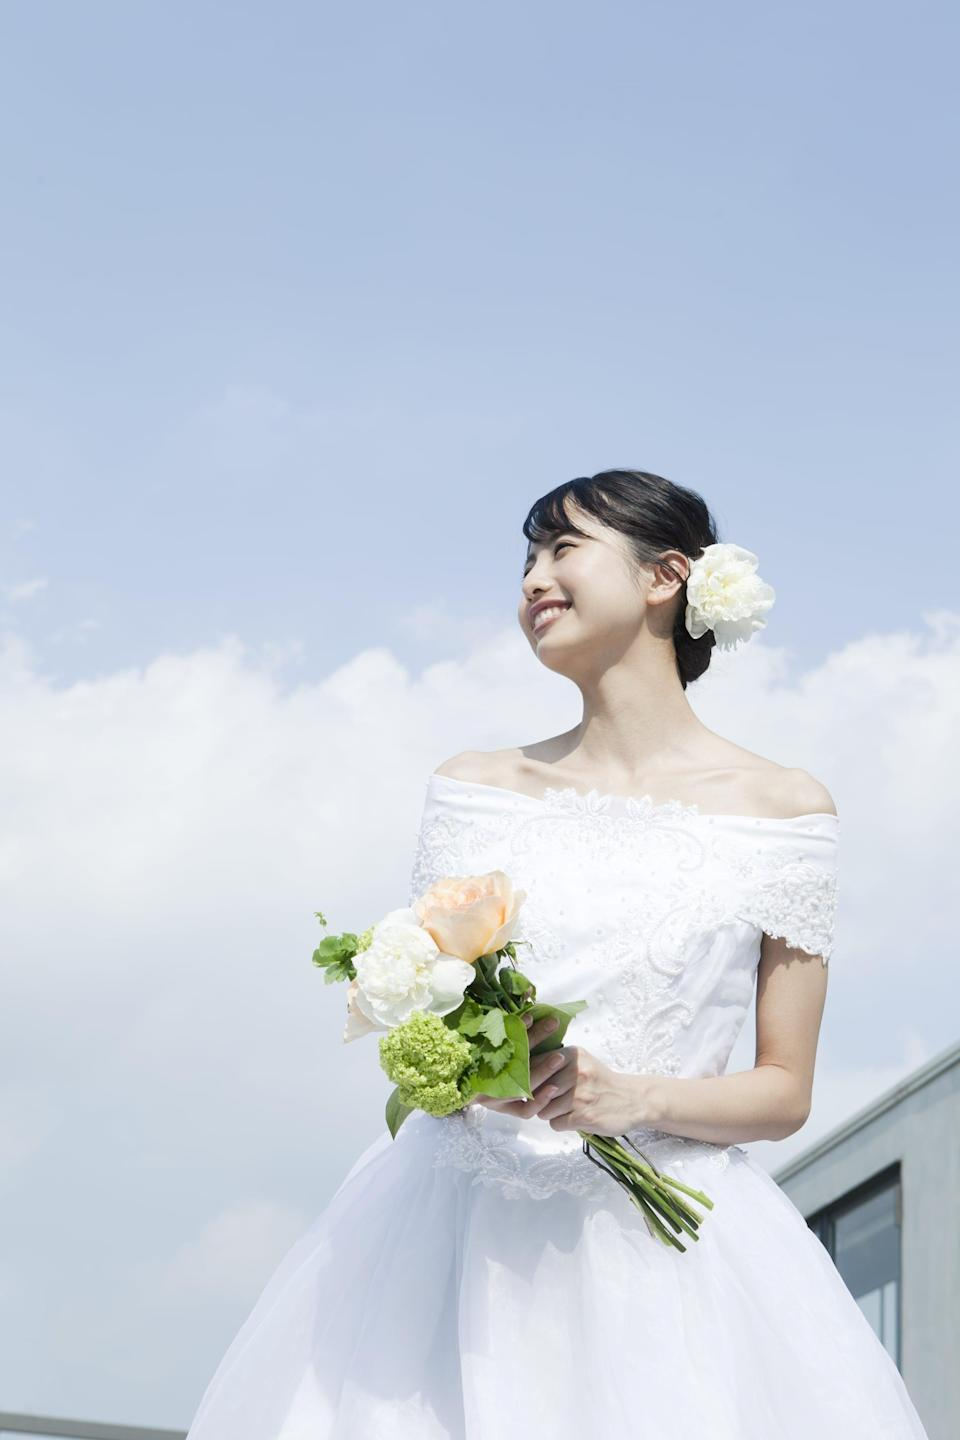 <p>Capture the details from down low and use the bright blue sky as your backdrop. It'll allow viewers to see your dress from a totally new perspective. </p>